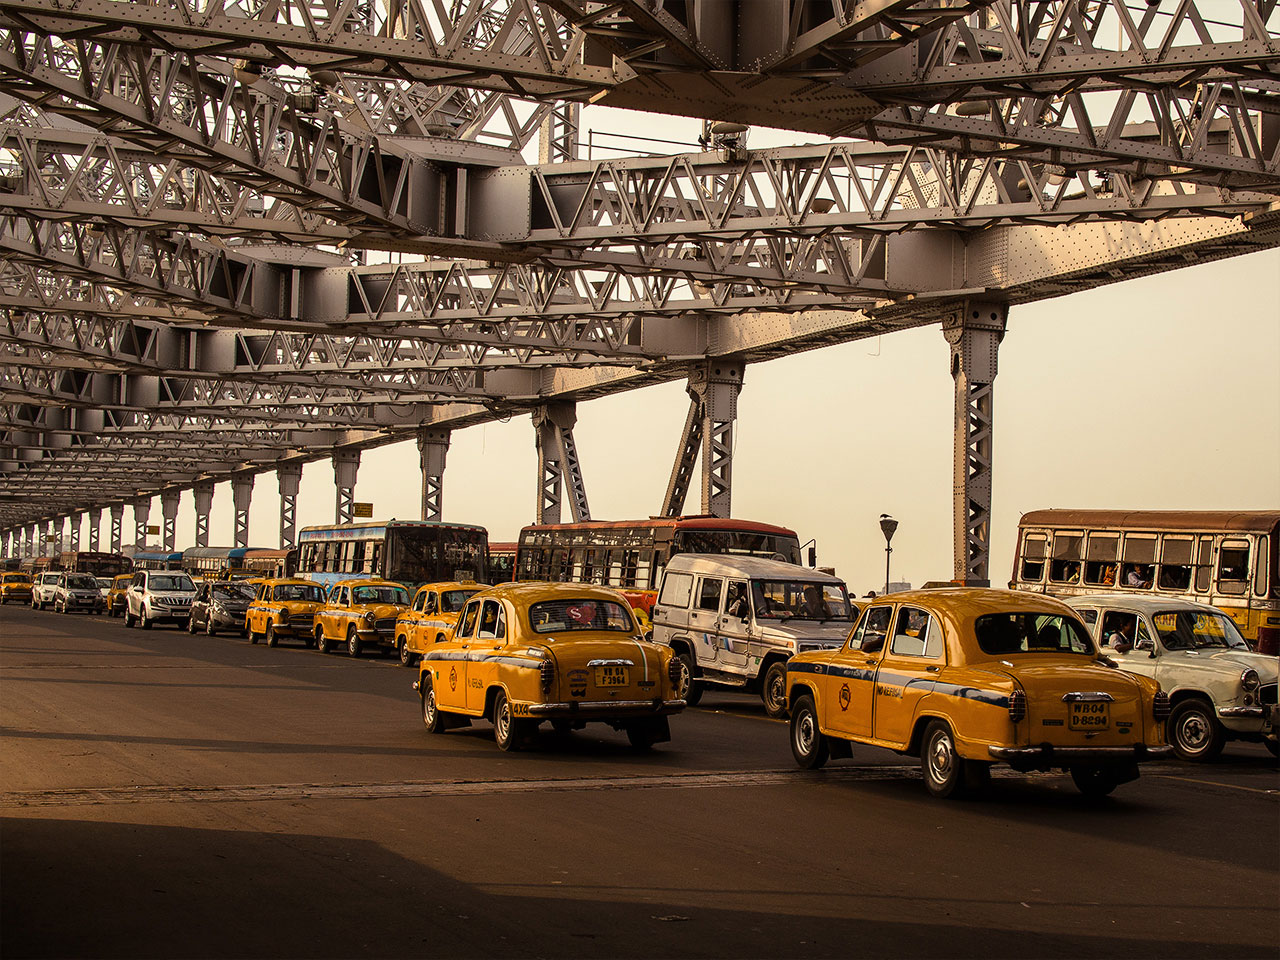 Kolkata Traffic Bridge